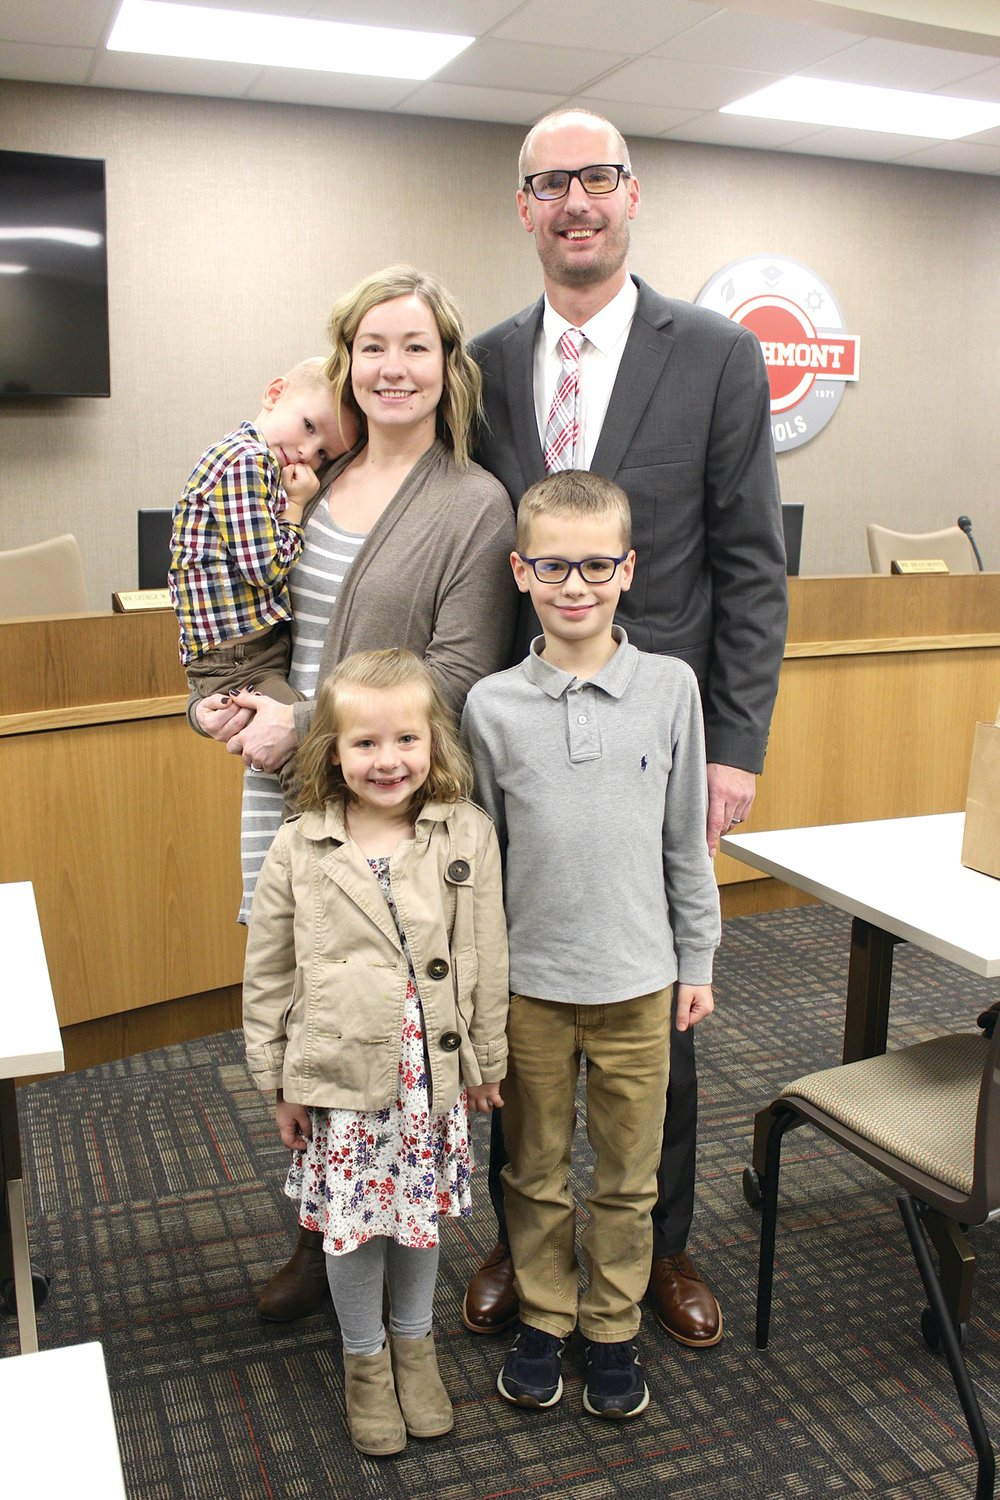 Jesse Burgess, newly hired as principal at Southmont High School, stands tall with his after receiving approval from the Southmont school board Monday. Burgess was accompanied by his family Monday, including his wife Jenna, his six-year-old daughter Cora and sons Caleb, standing, and Knox.